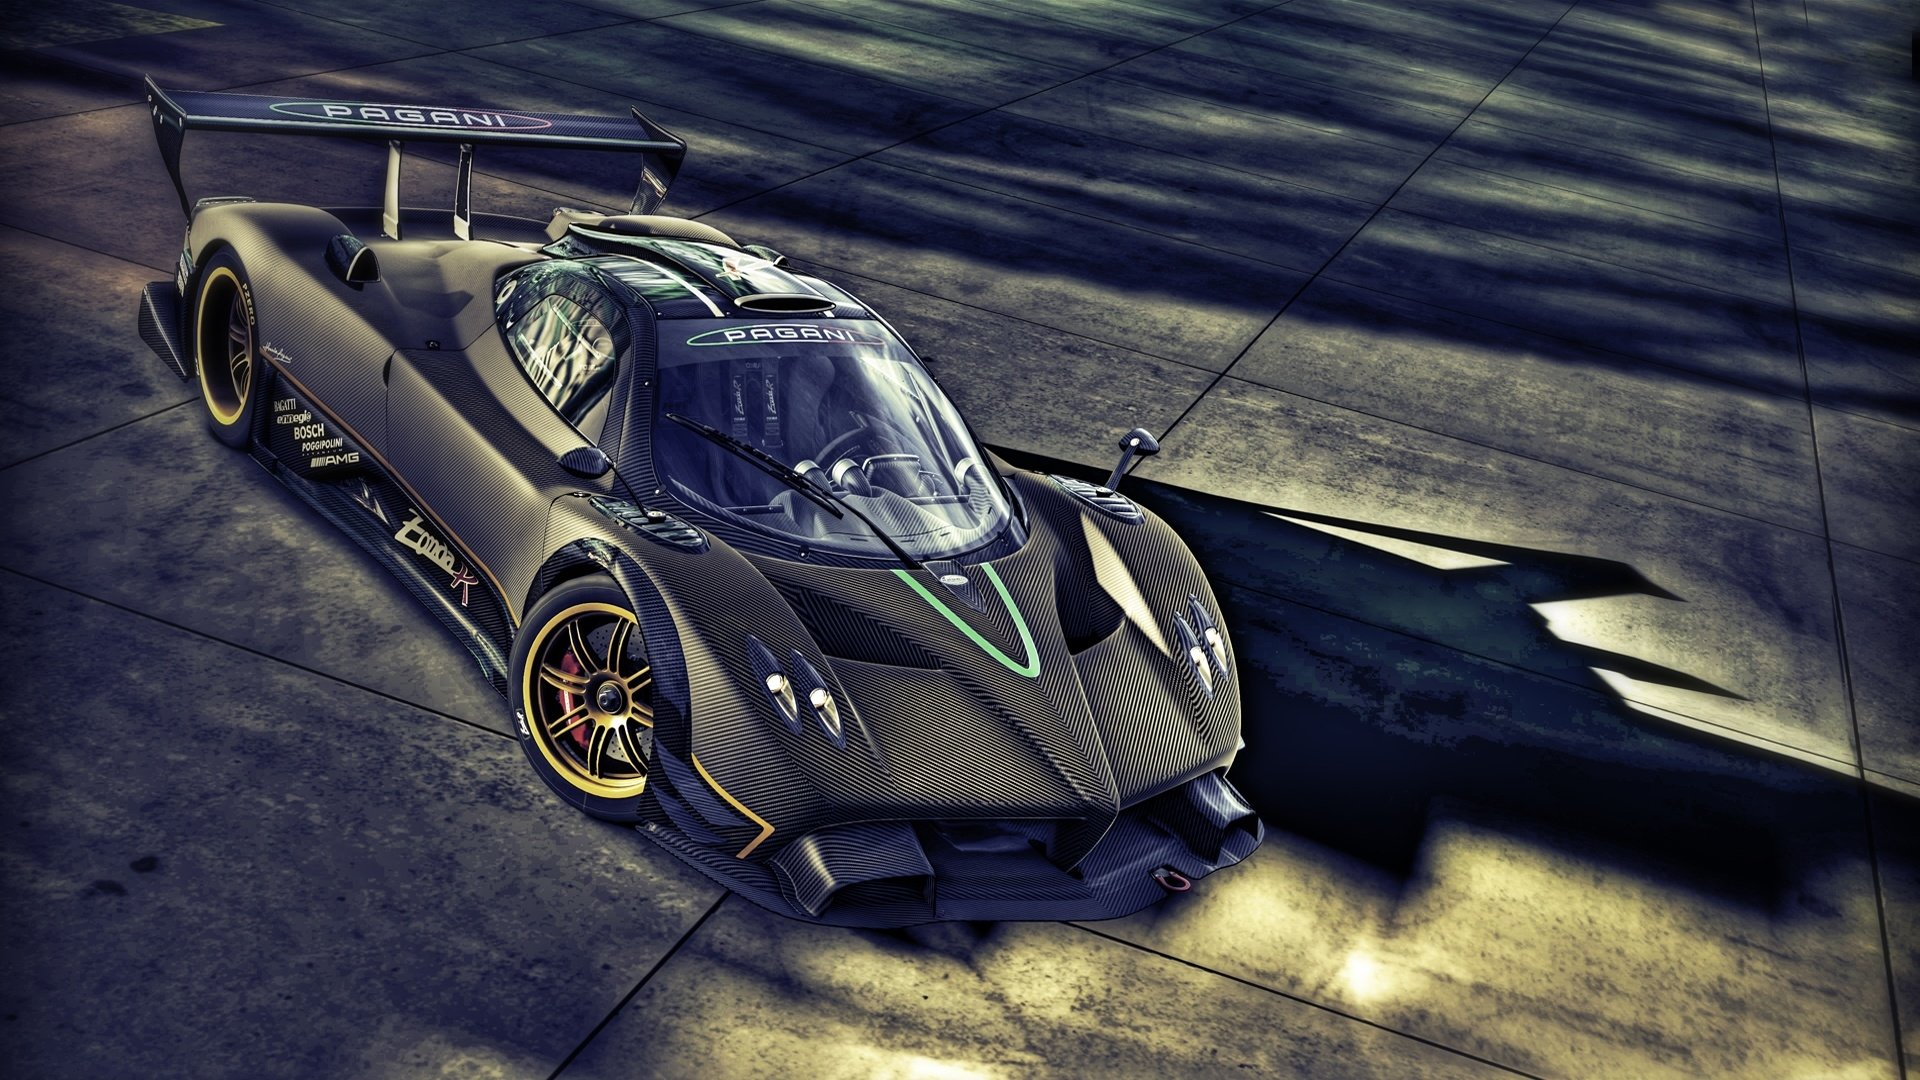 zonda full hd wallpaper and background image | 1920x1080 | id:447330